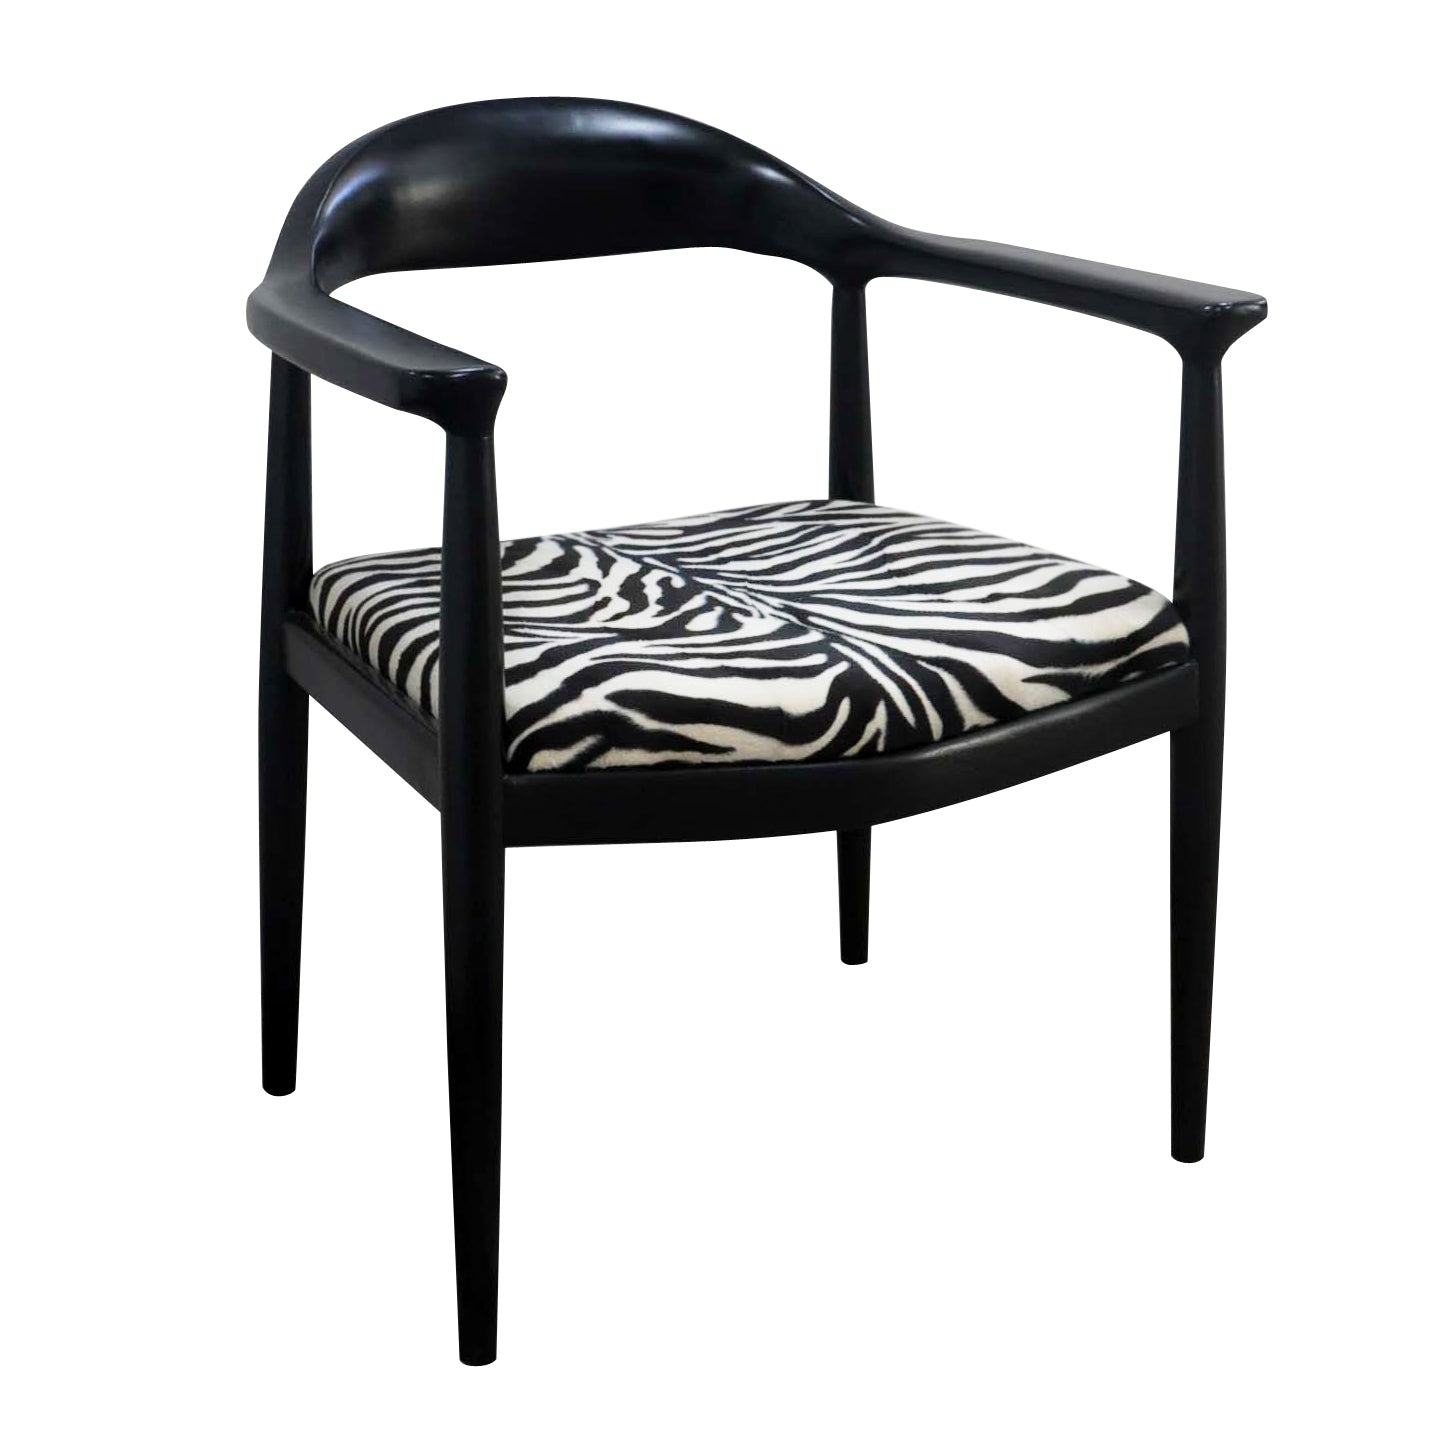 As-Is, CJ Arm Chair, 63x55x75.5 cm, Display Piece